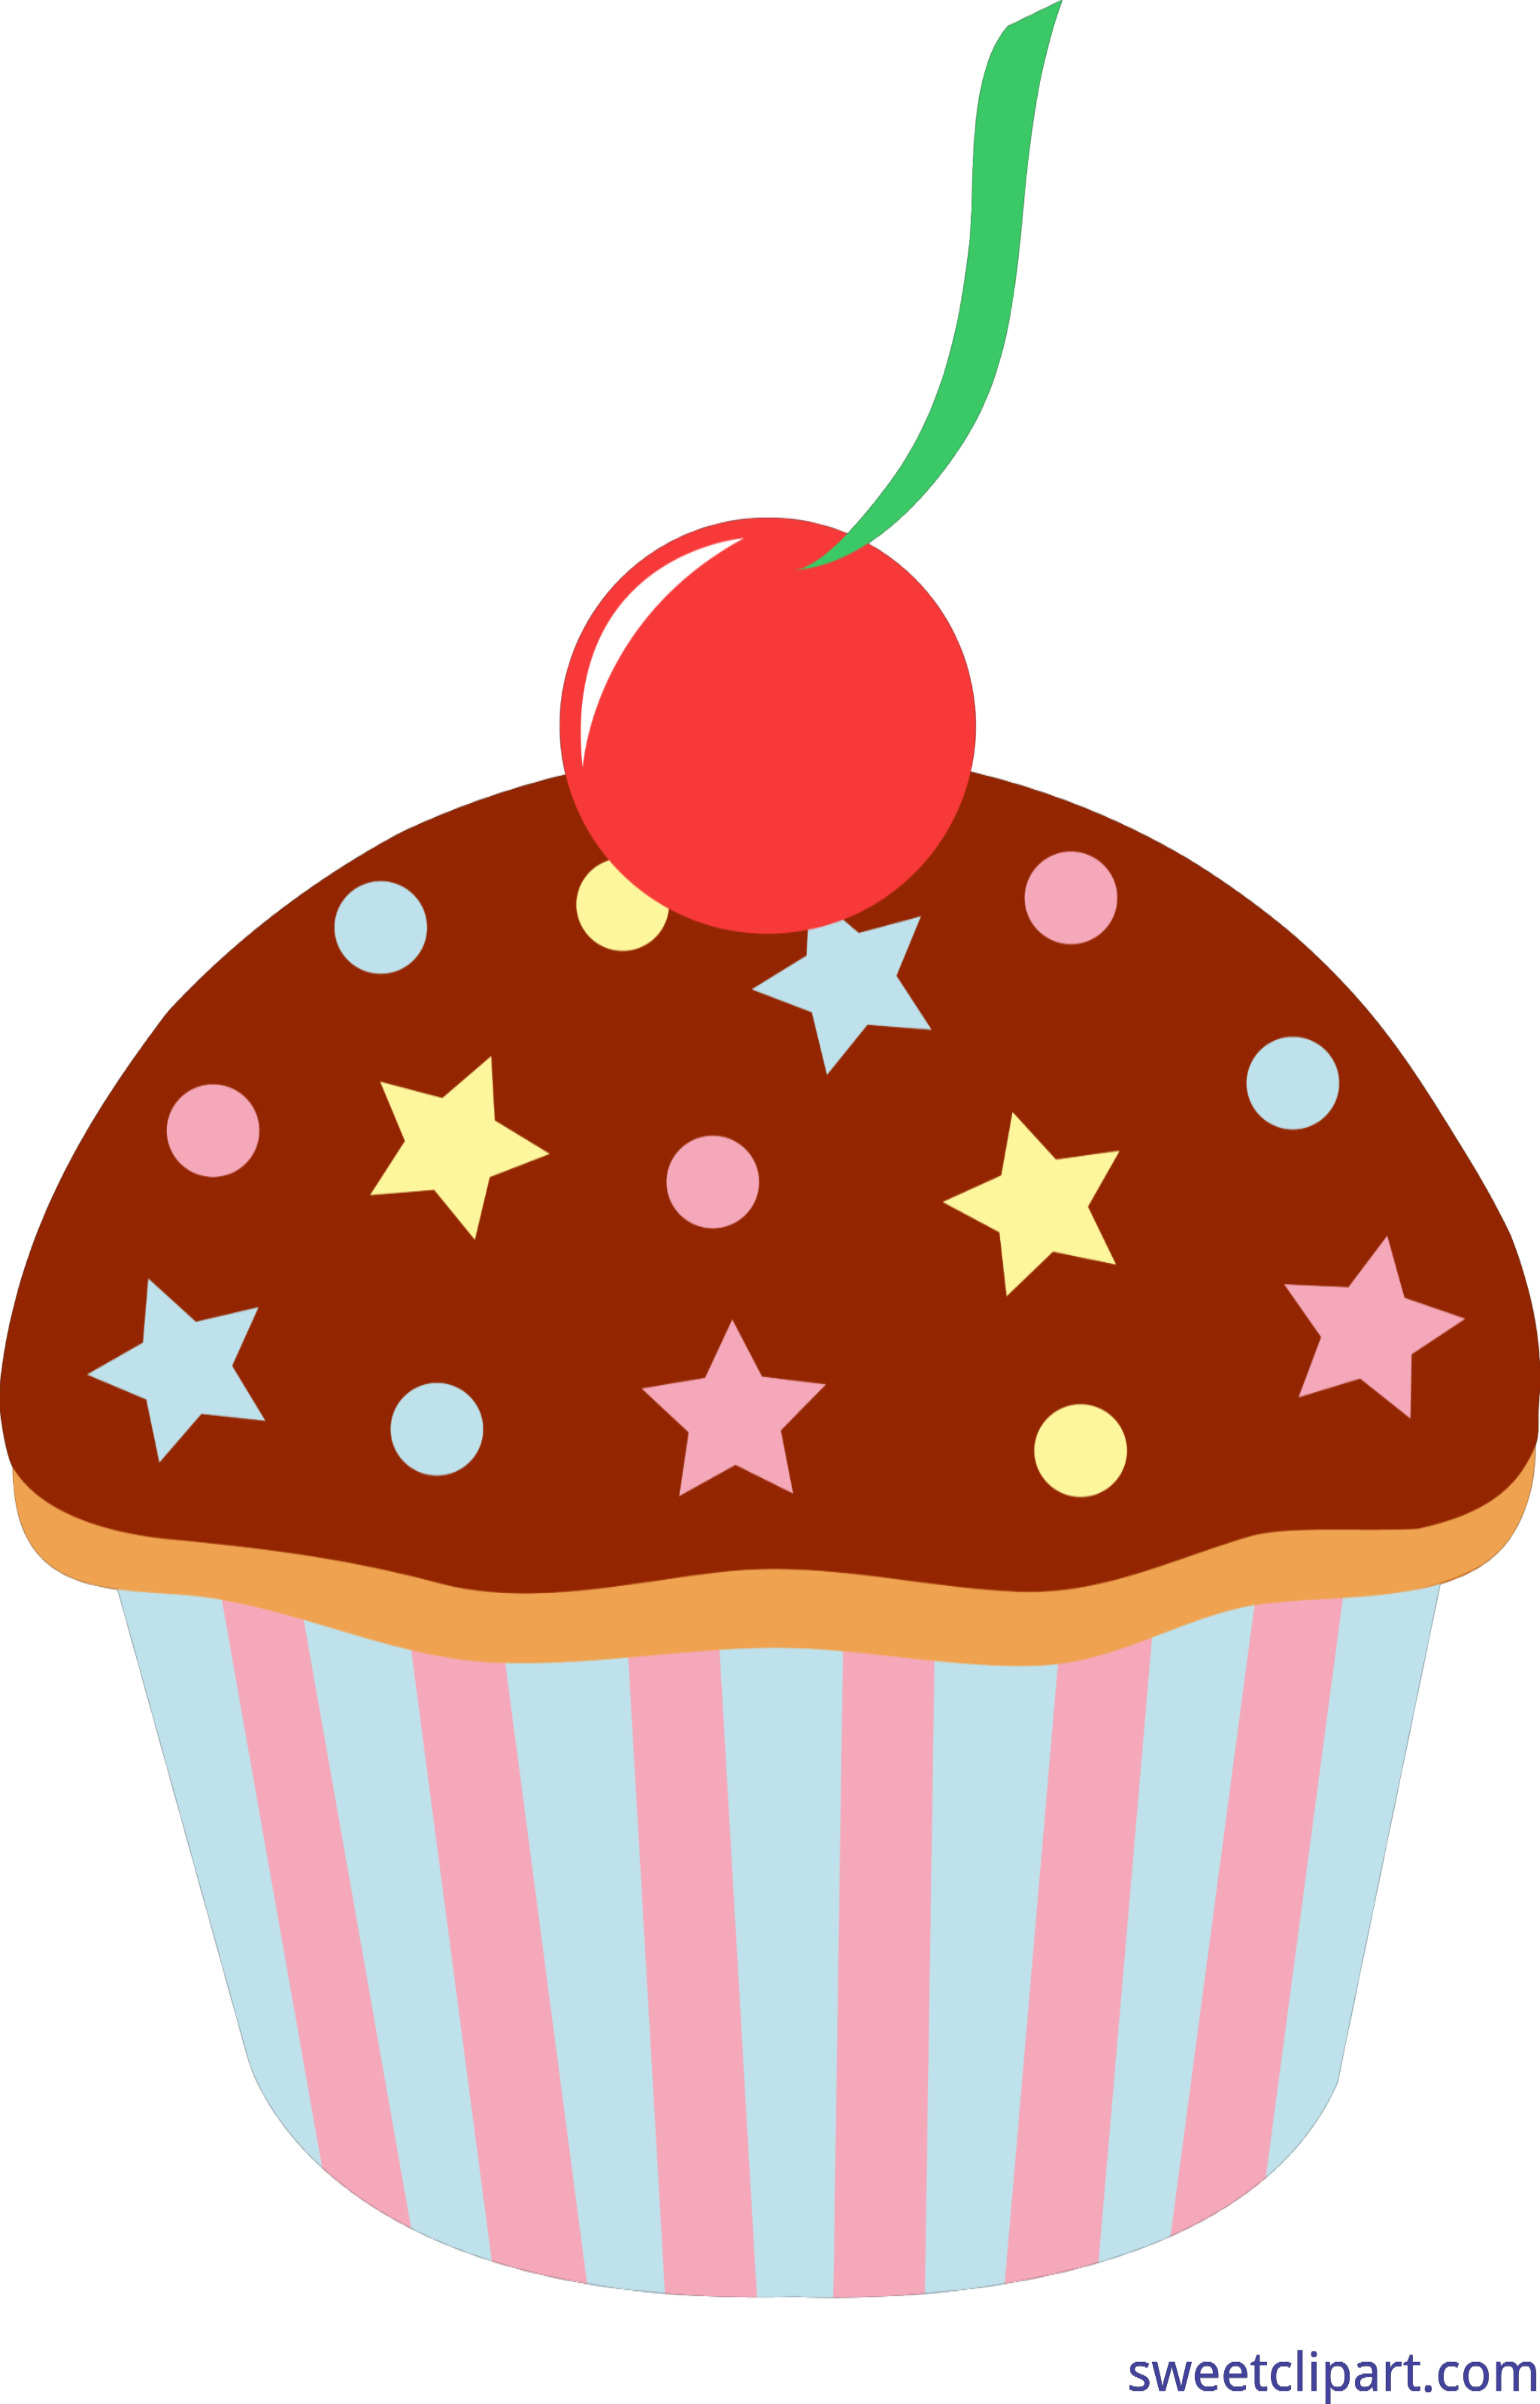 clip art black and white download Chocolate Cupcake With Sprinkles Clip Art